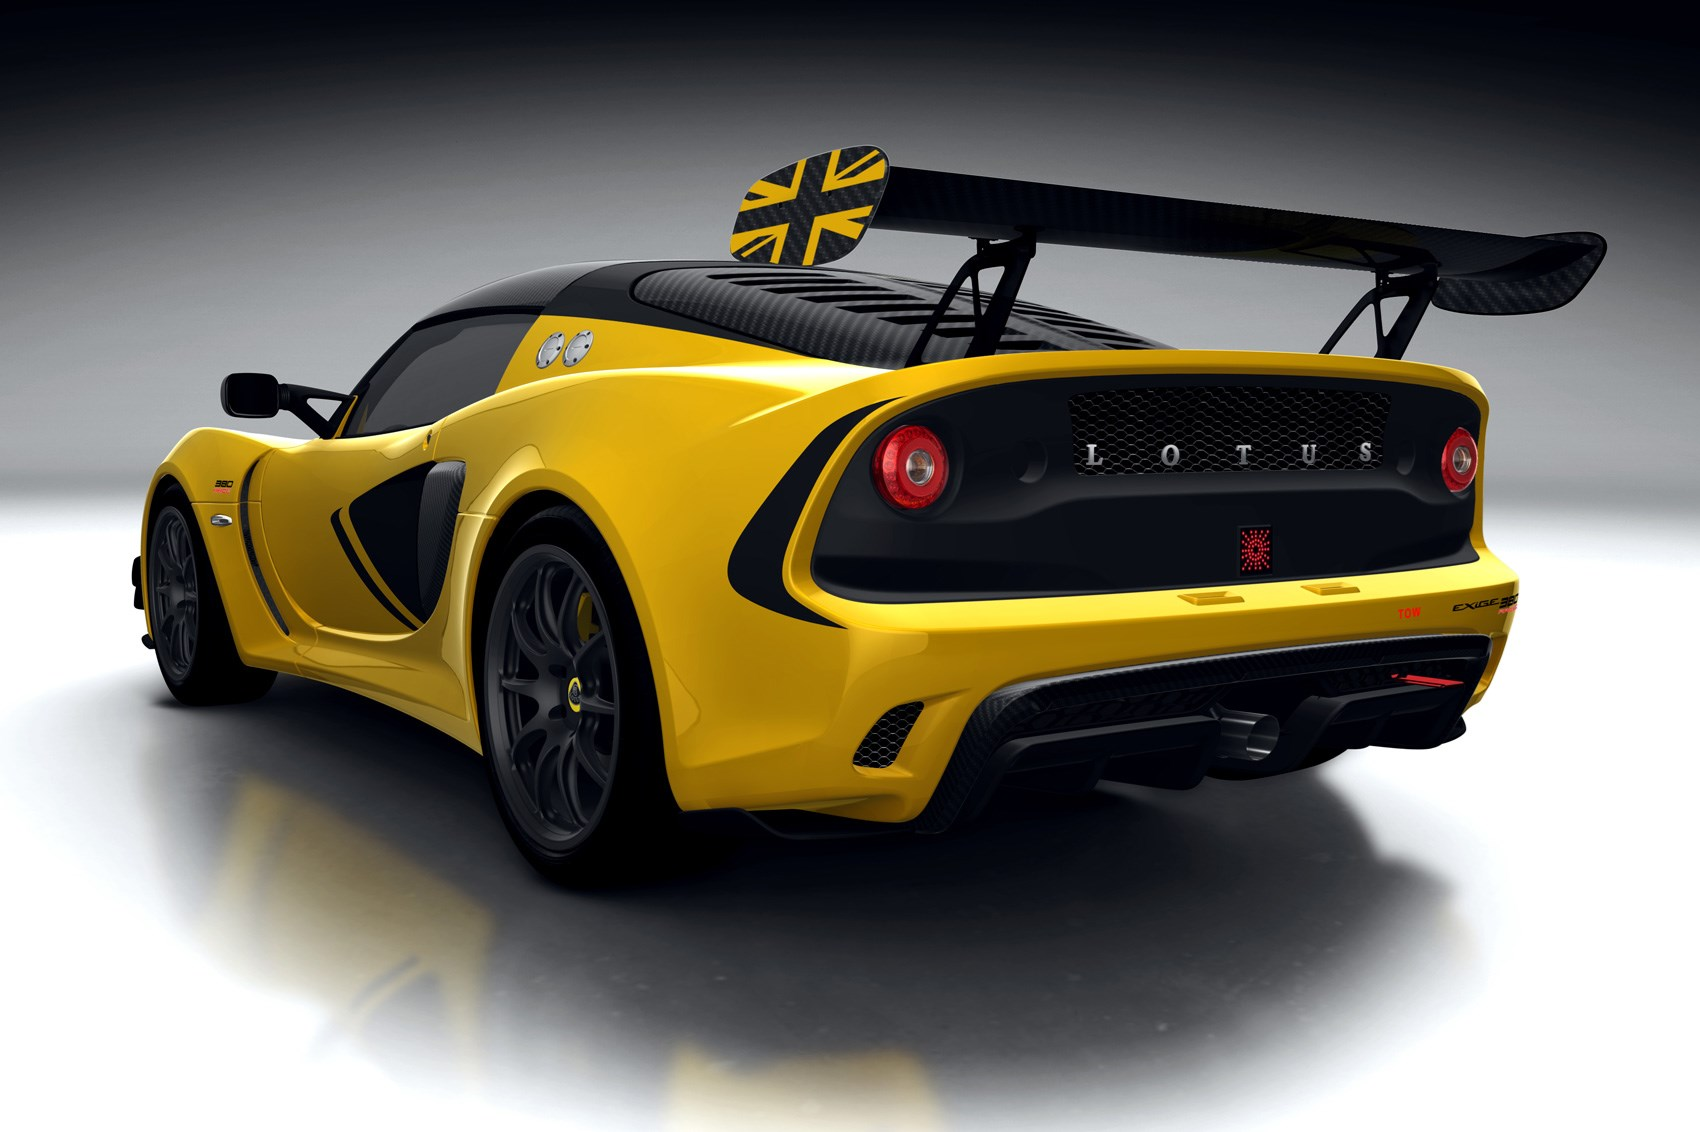 lotus exige race 380 998kg racer revealed for 2017 car magazine. Black Bedroom Furniture Sets. Home Design Ideas